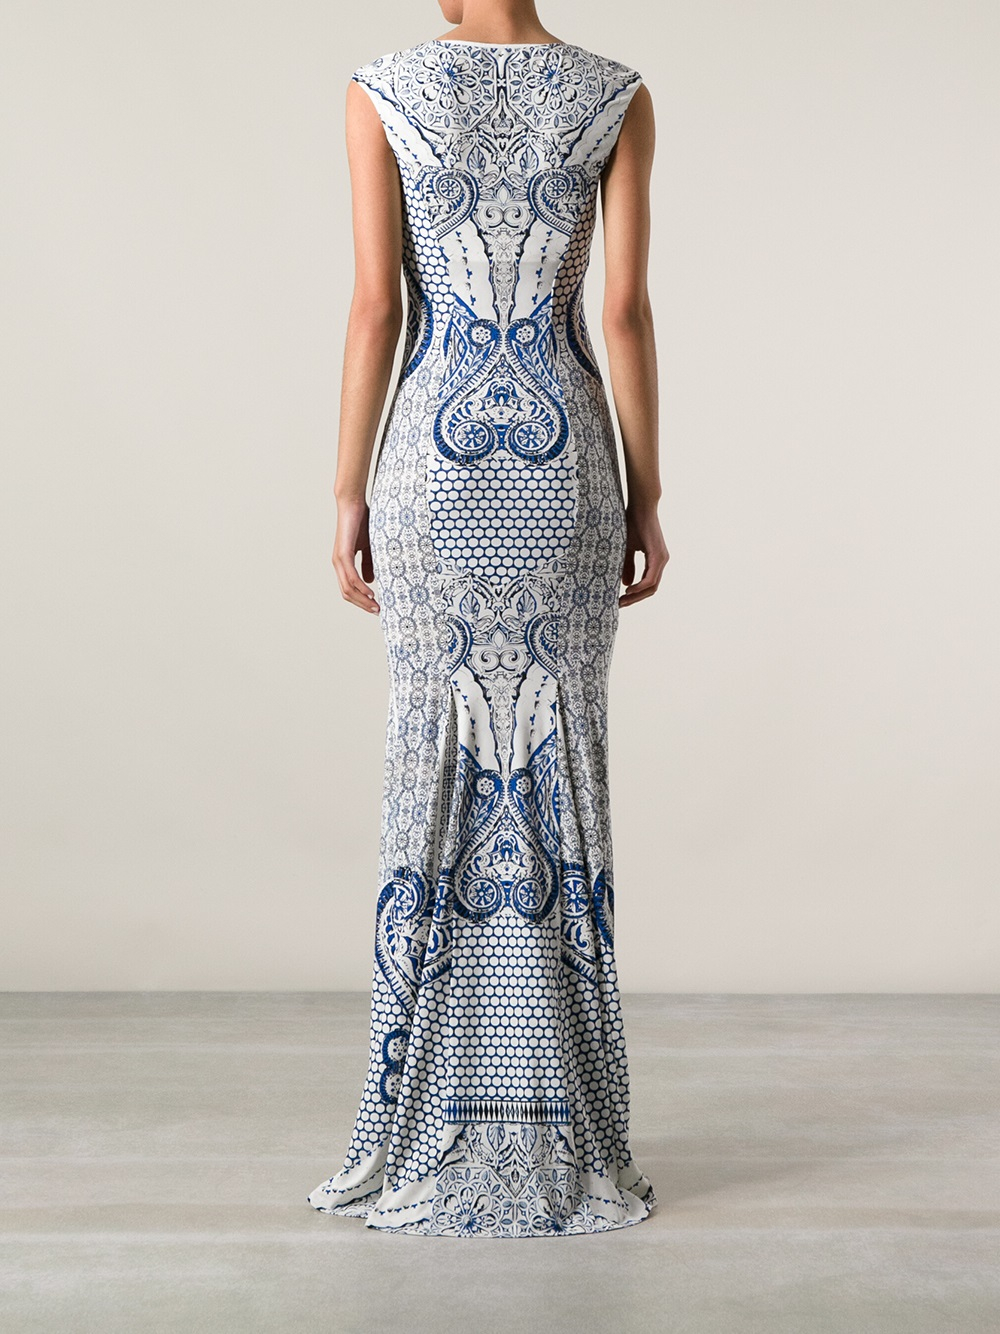 Lyst Roberto Cavalli Sleeveless Paisley Dress In Blue